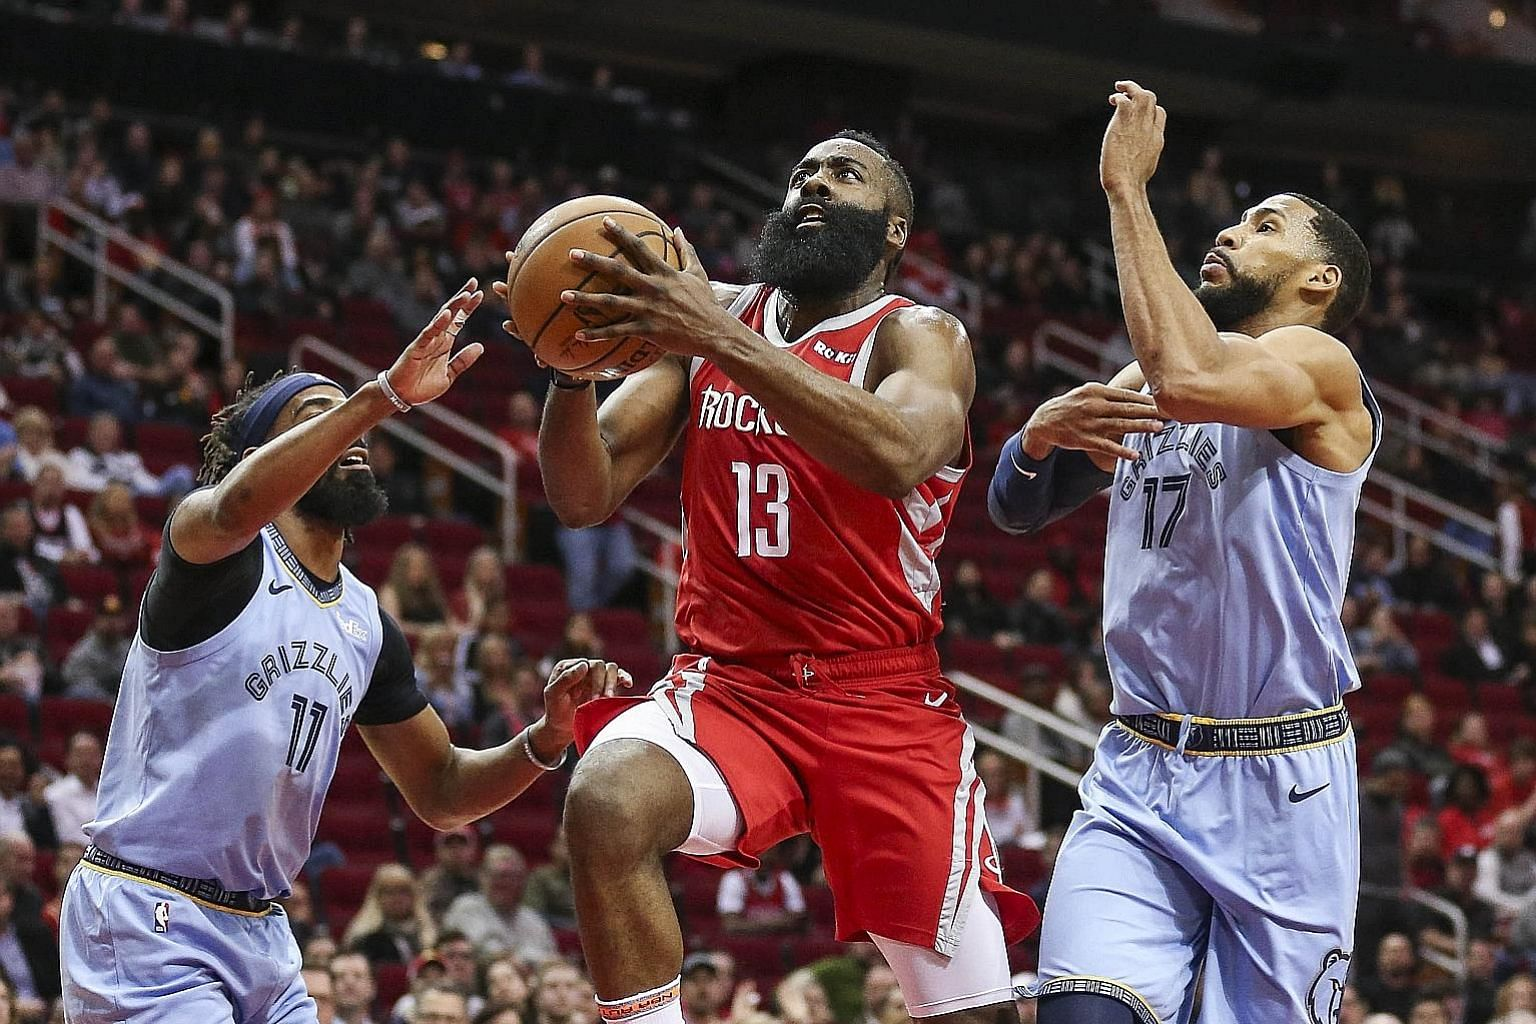 Houston Rockets guard James Harden making light of the defensive efforts of Memphis Grizzlies' Mike Conley (No. 11) and guard Garrett Temple as he drives to the basket during the Rockets' 112-94 win. Harden scored 57 points, the third game in which h